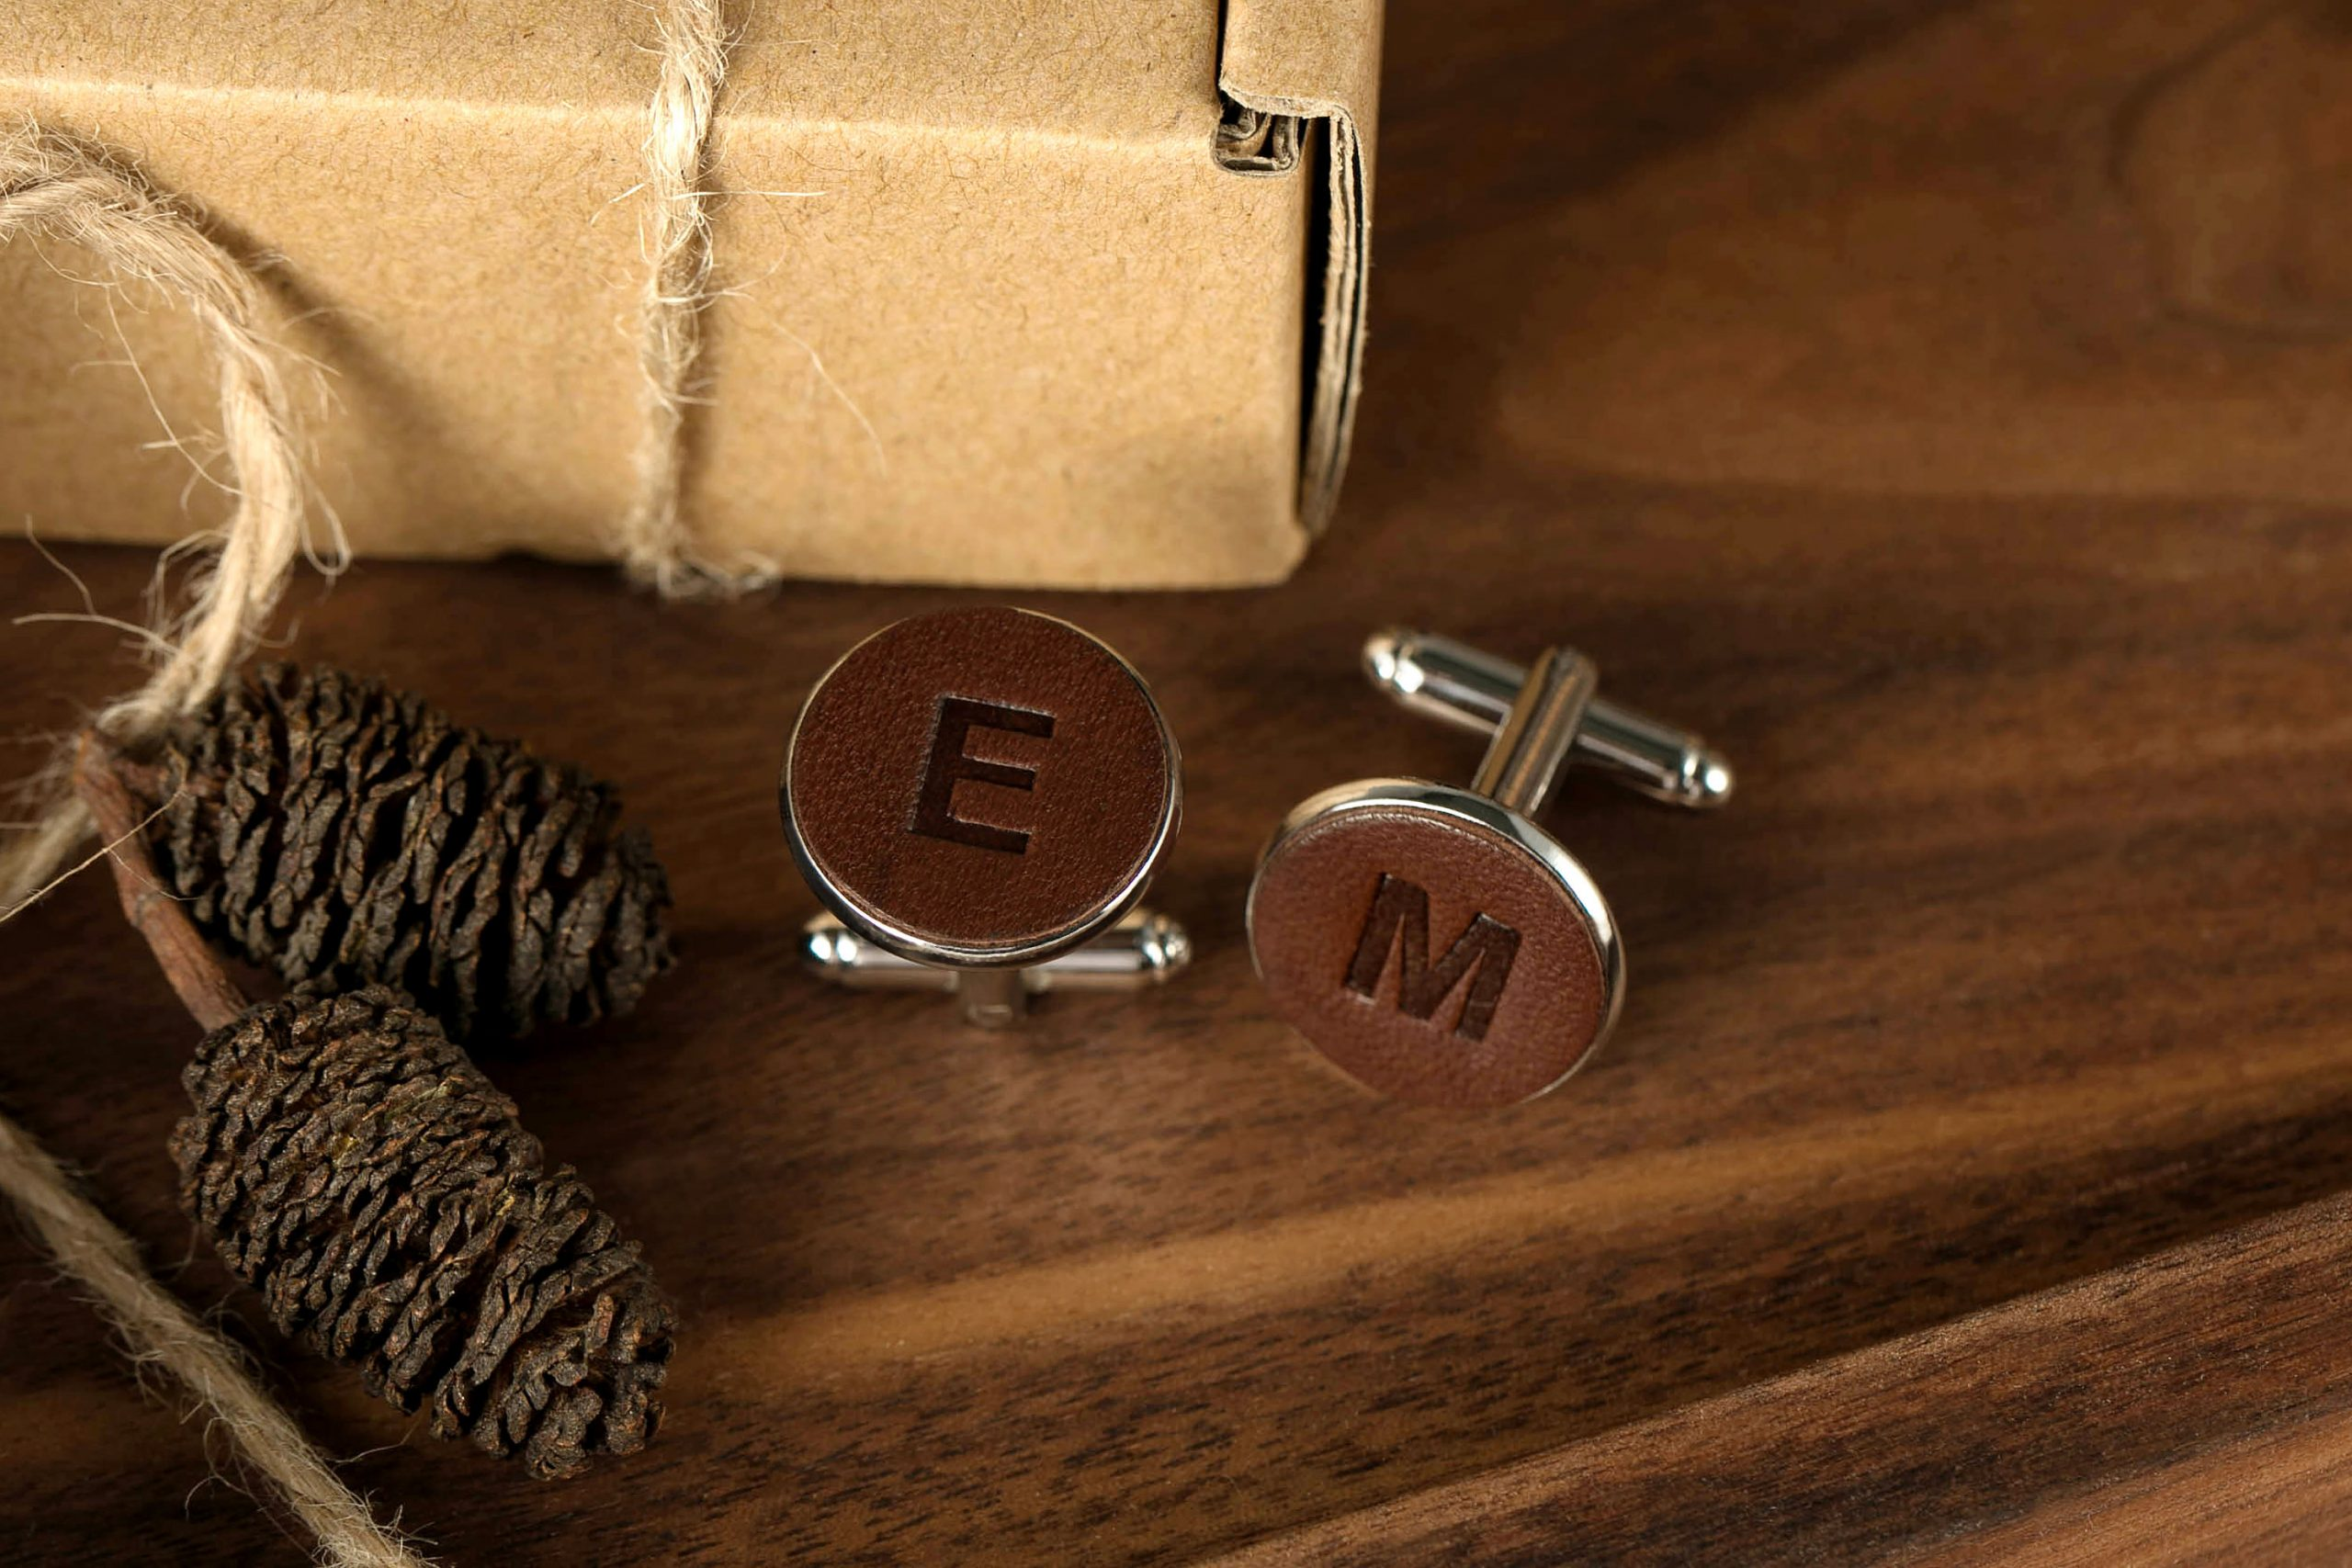 Groom Cufflinks - Initials Leather Personalized Wedding Cuff Links Monogram For 3rd Anniversary Gift Him